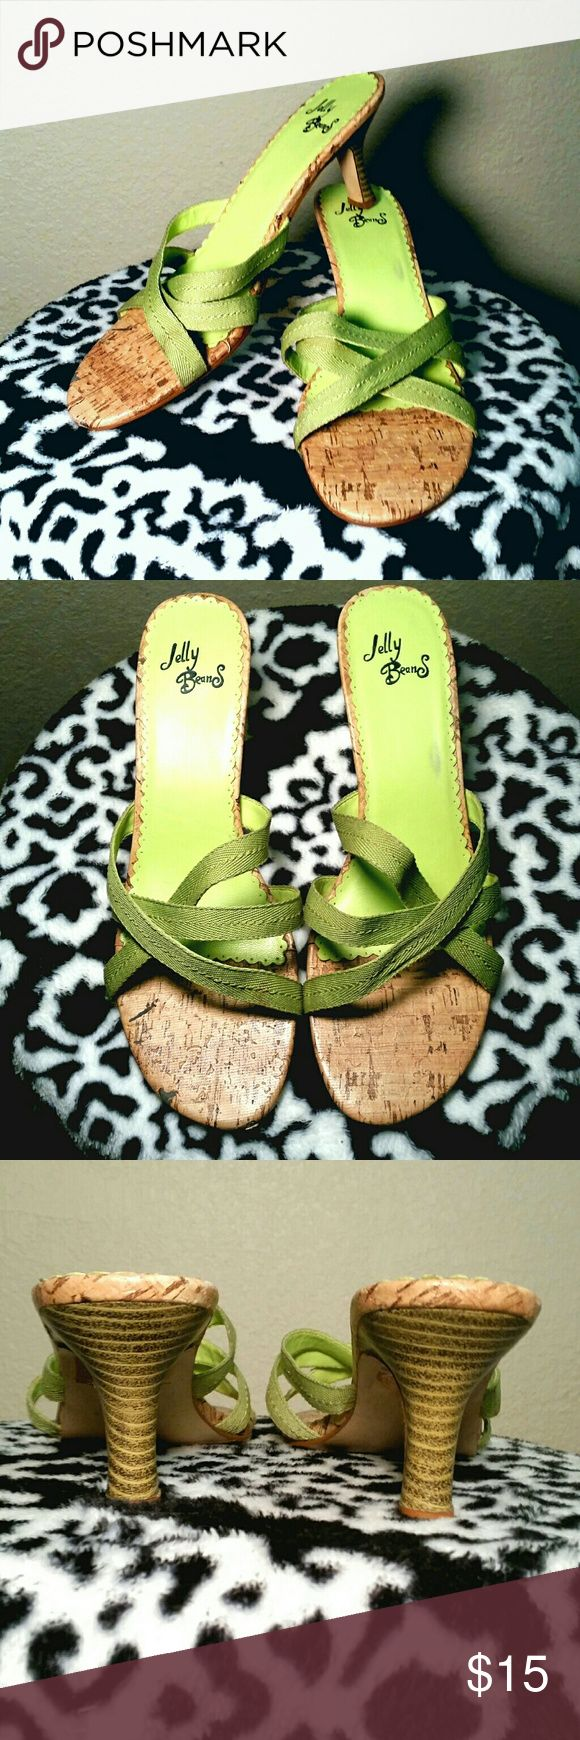 """Jelly Beans Sandals Slide sandals with lime cloth straps, bamboo look edging,. 3"""" heels. Jelly Beans Shoes Sandals"""